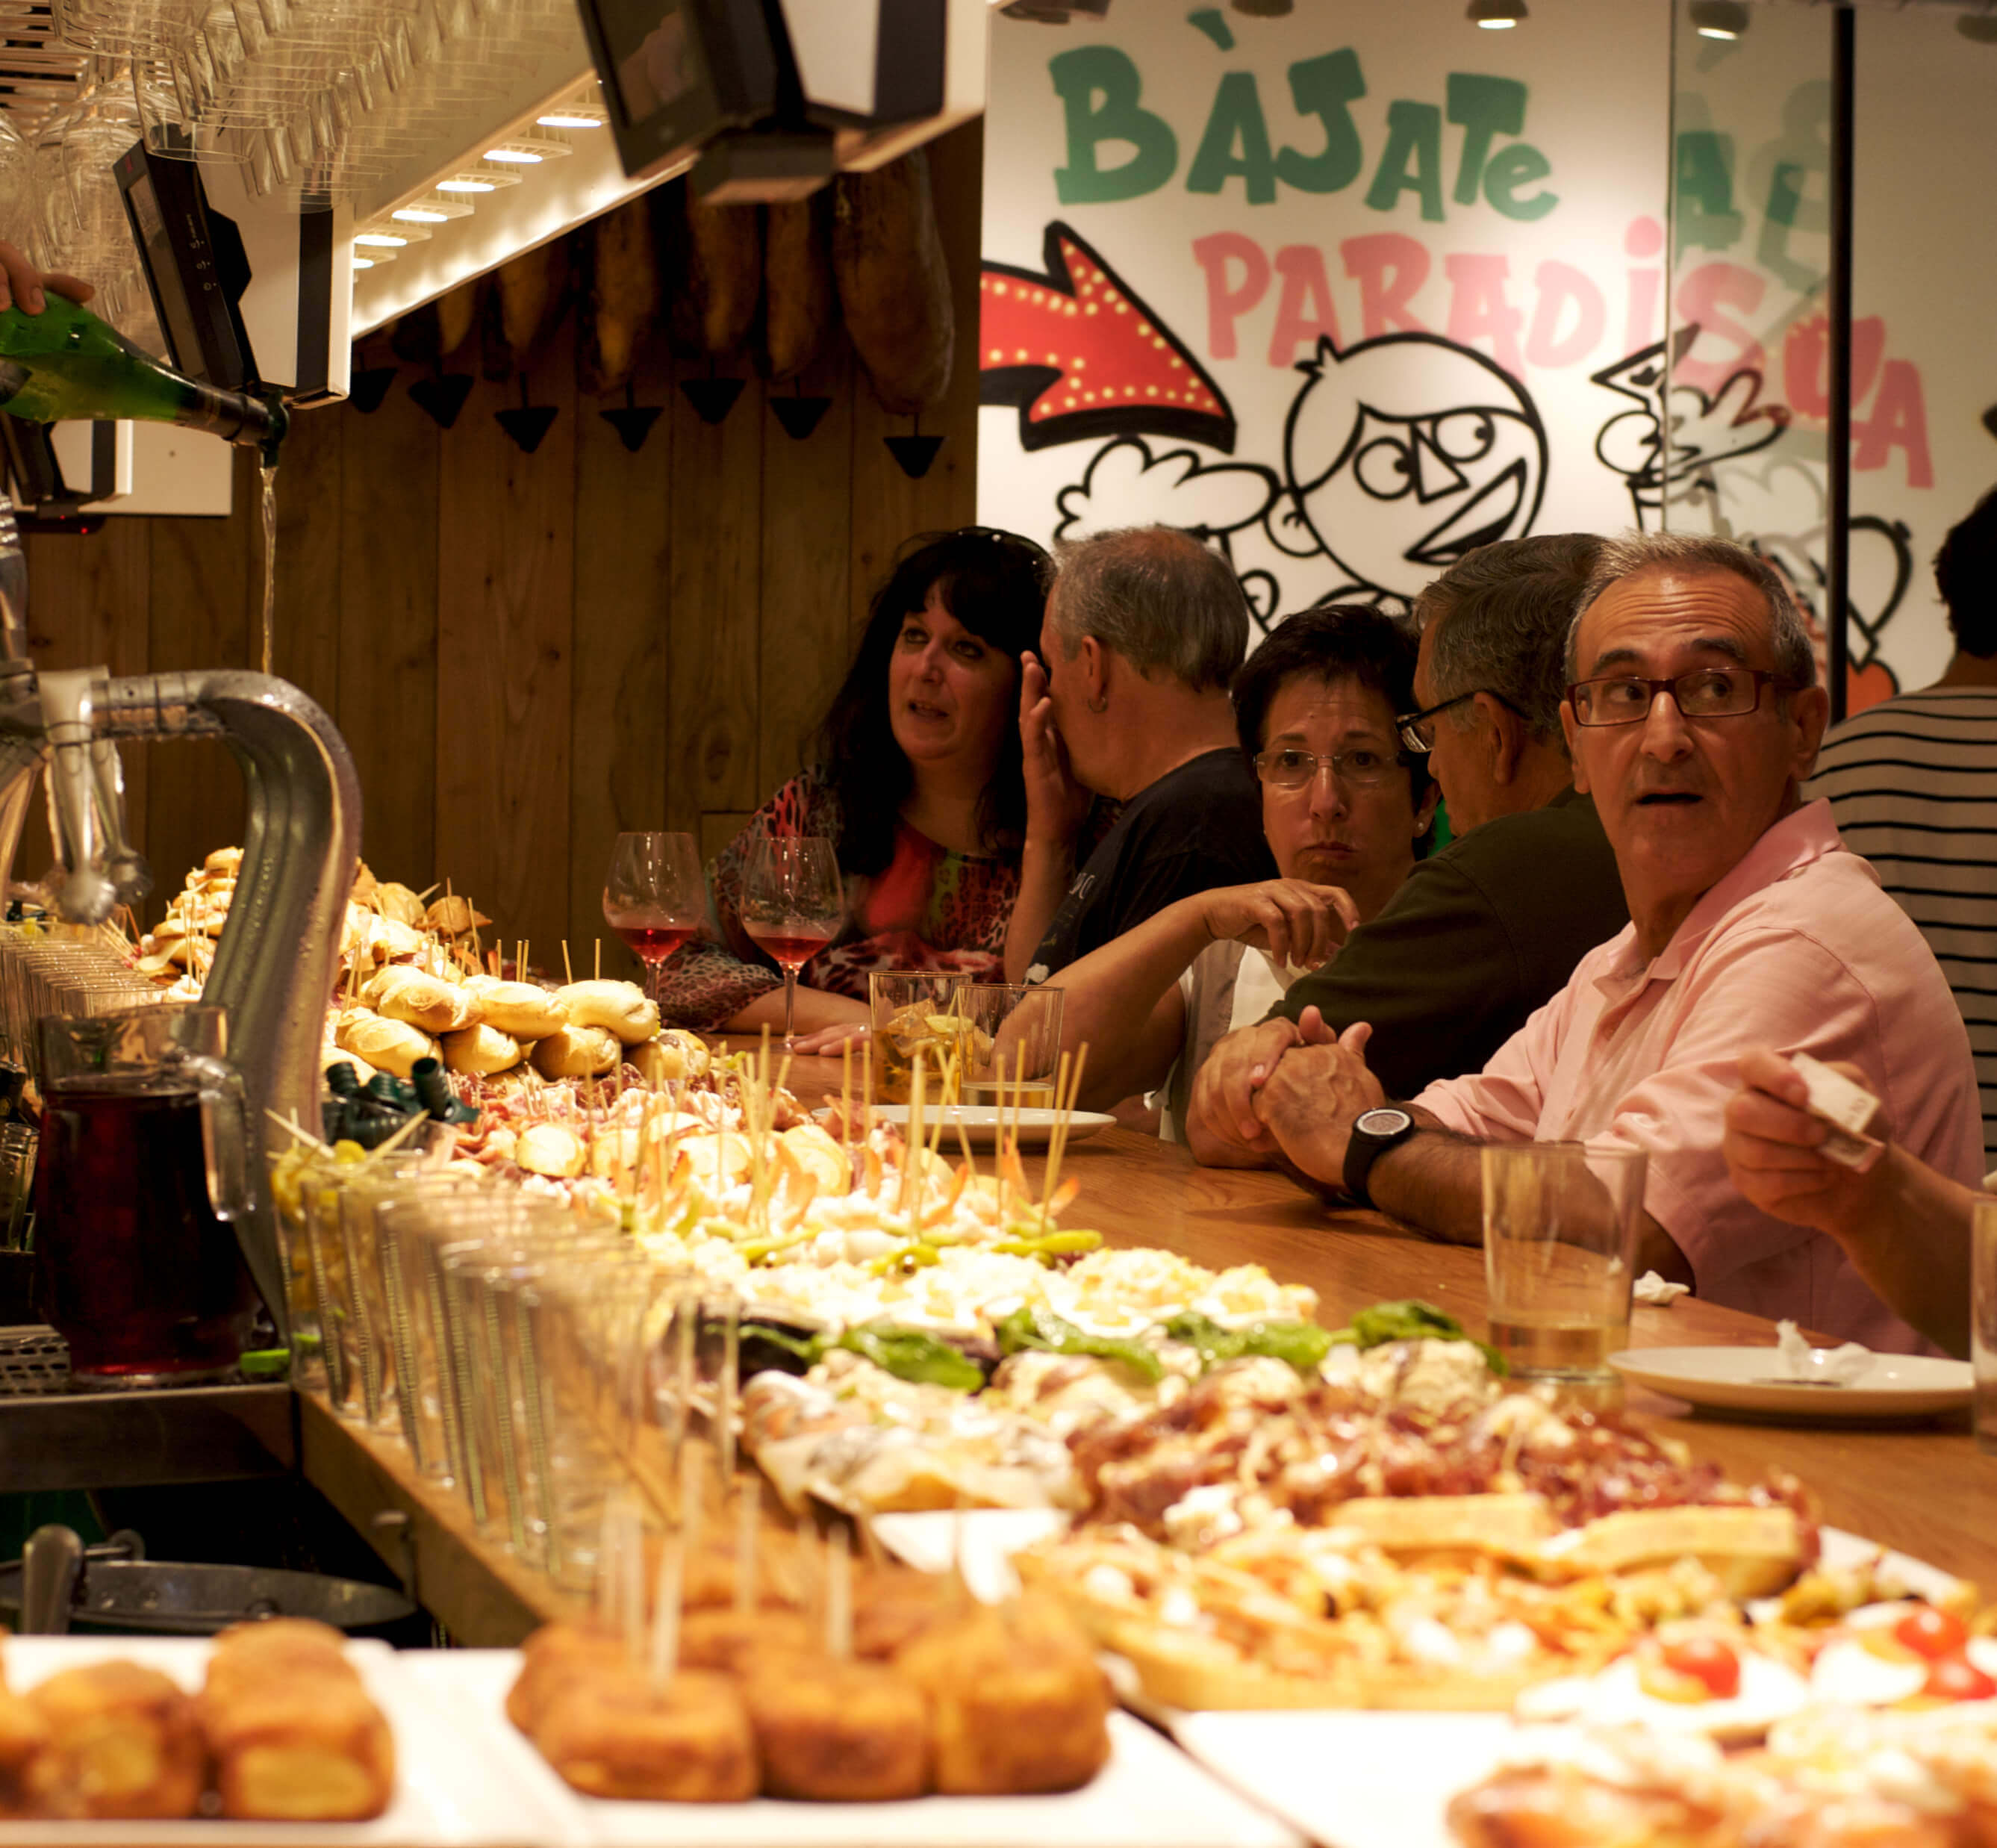 Basque tavern with pintxos (some with sticks, some without). Taken by Katina Rogers via Flickr .